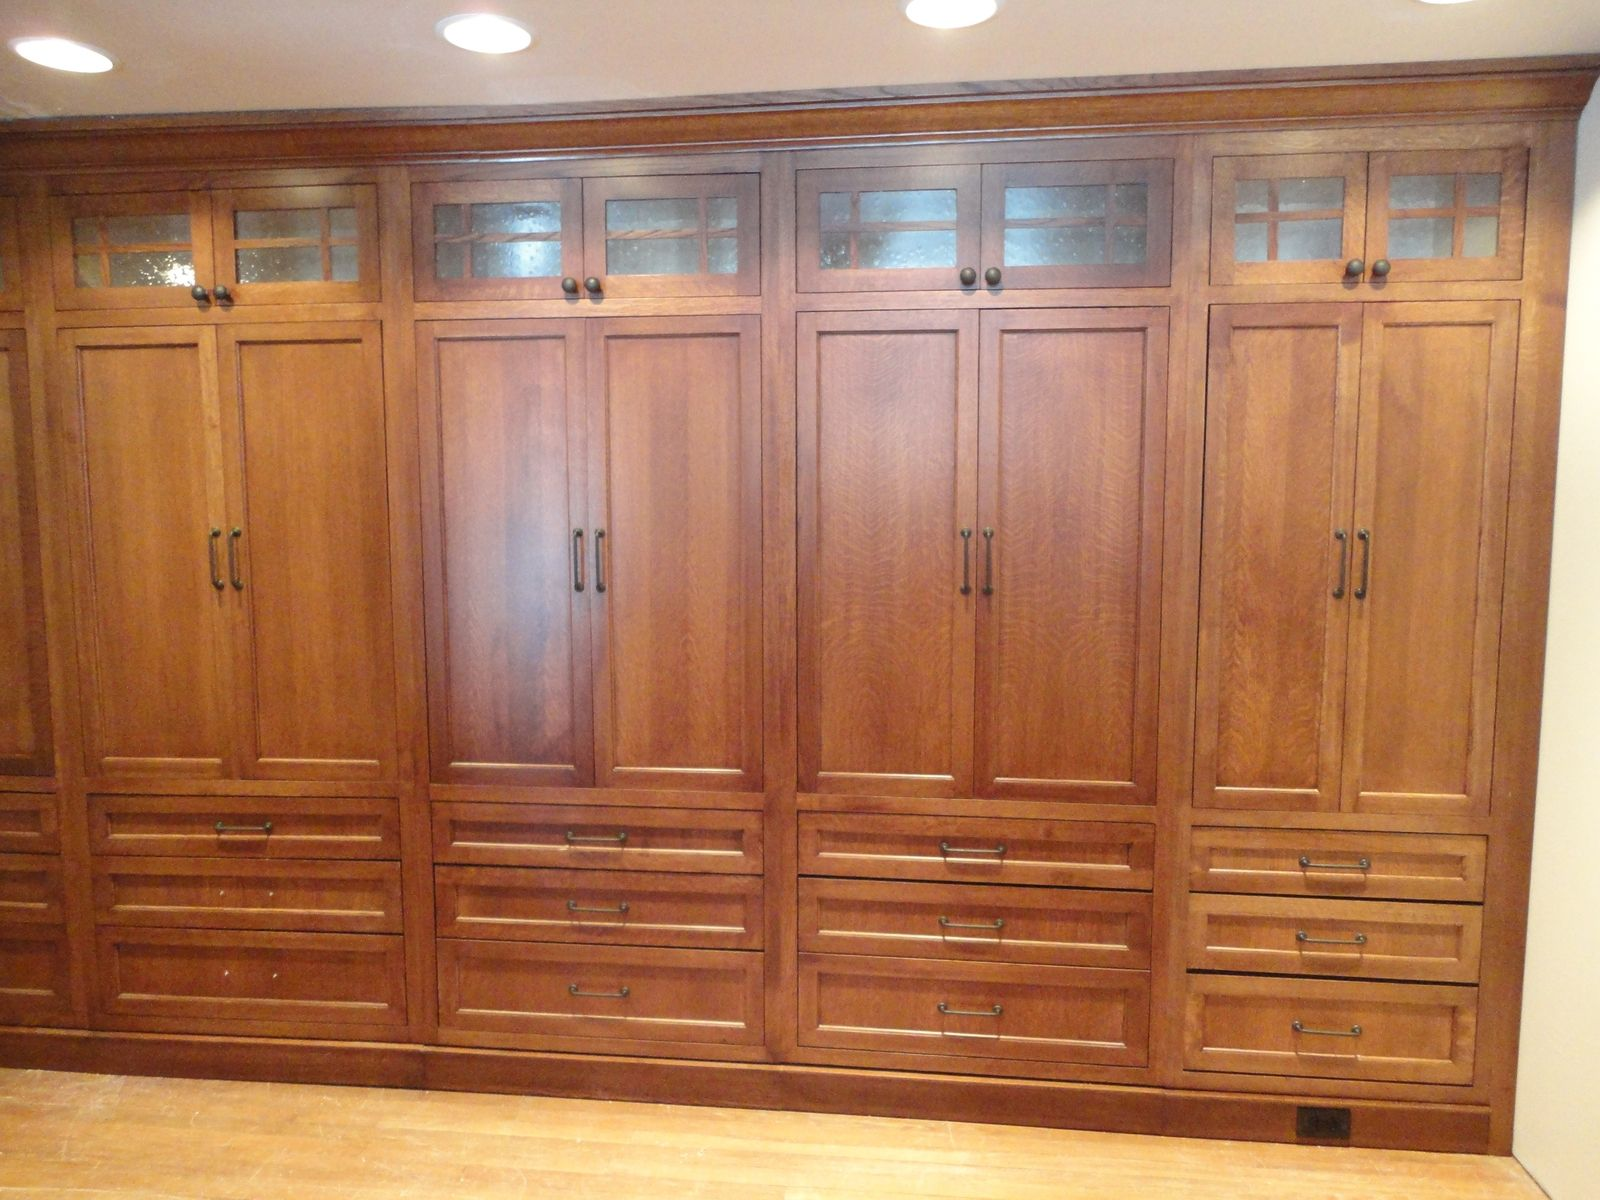 armoire bedroom wardrobe nice tall of photo clothes furniture storage big closet x cabinets for cabinet organizer